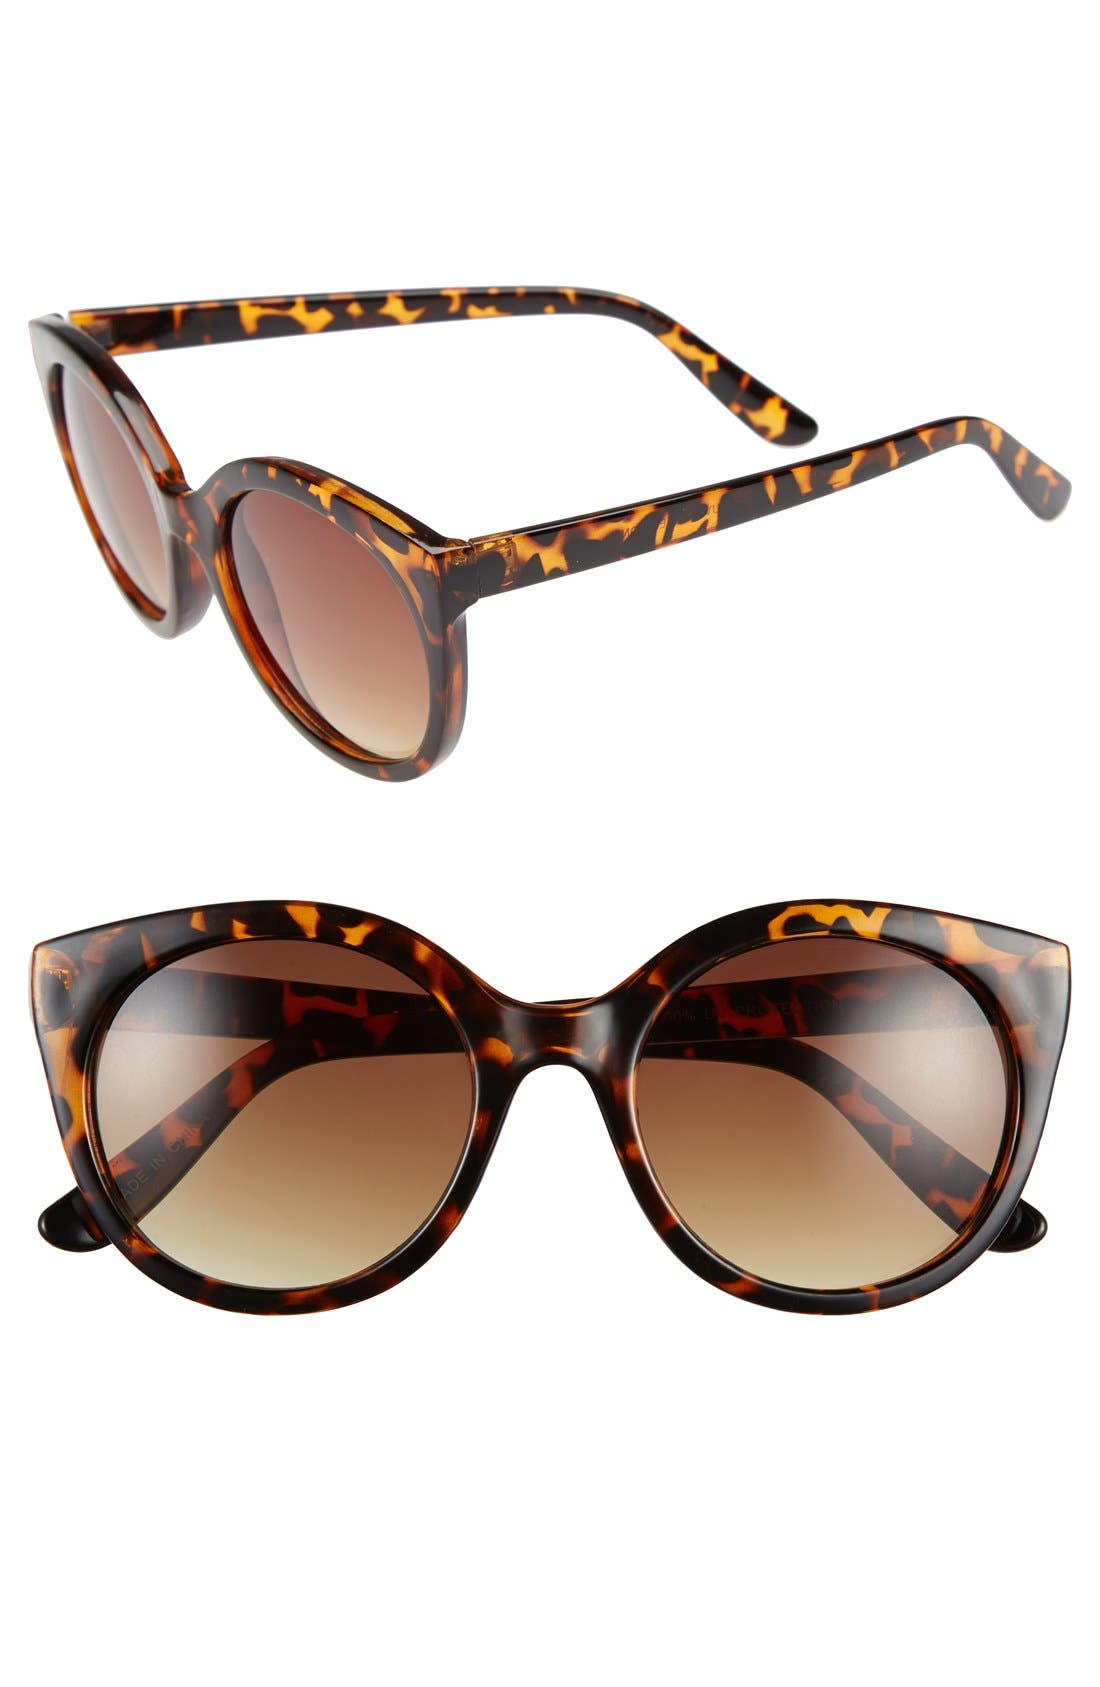 Main Image - BP. 60mm Retro Sunglasses